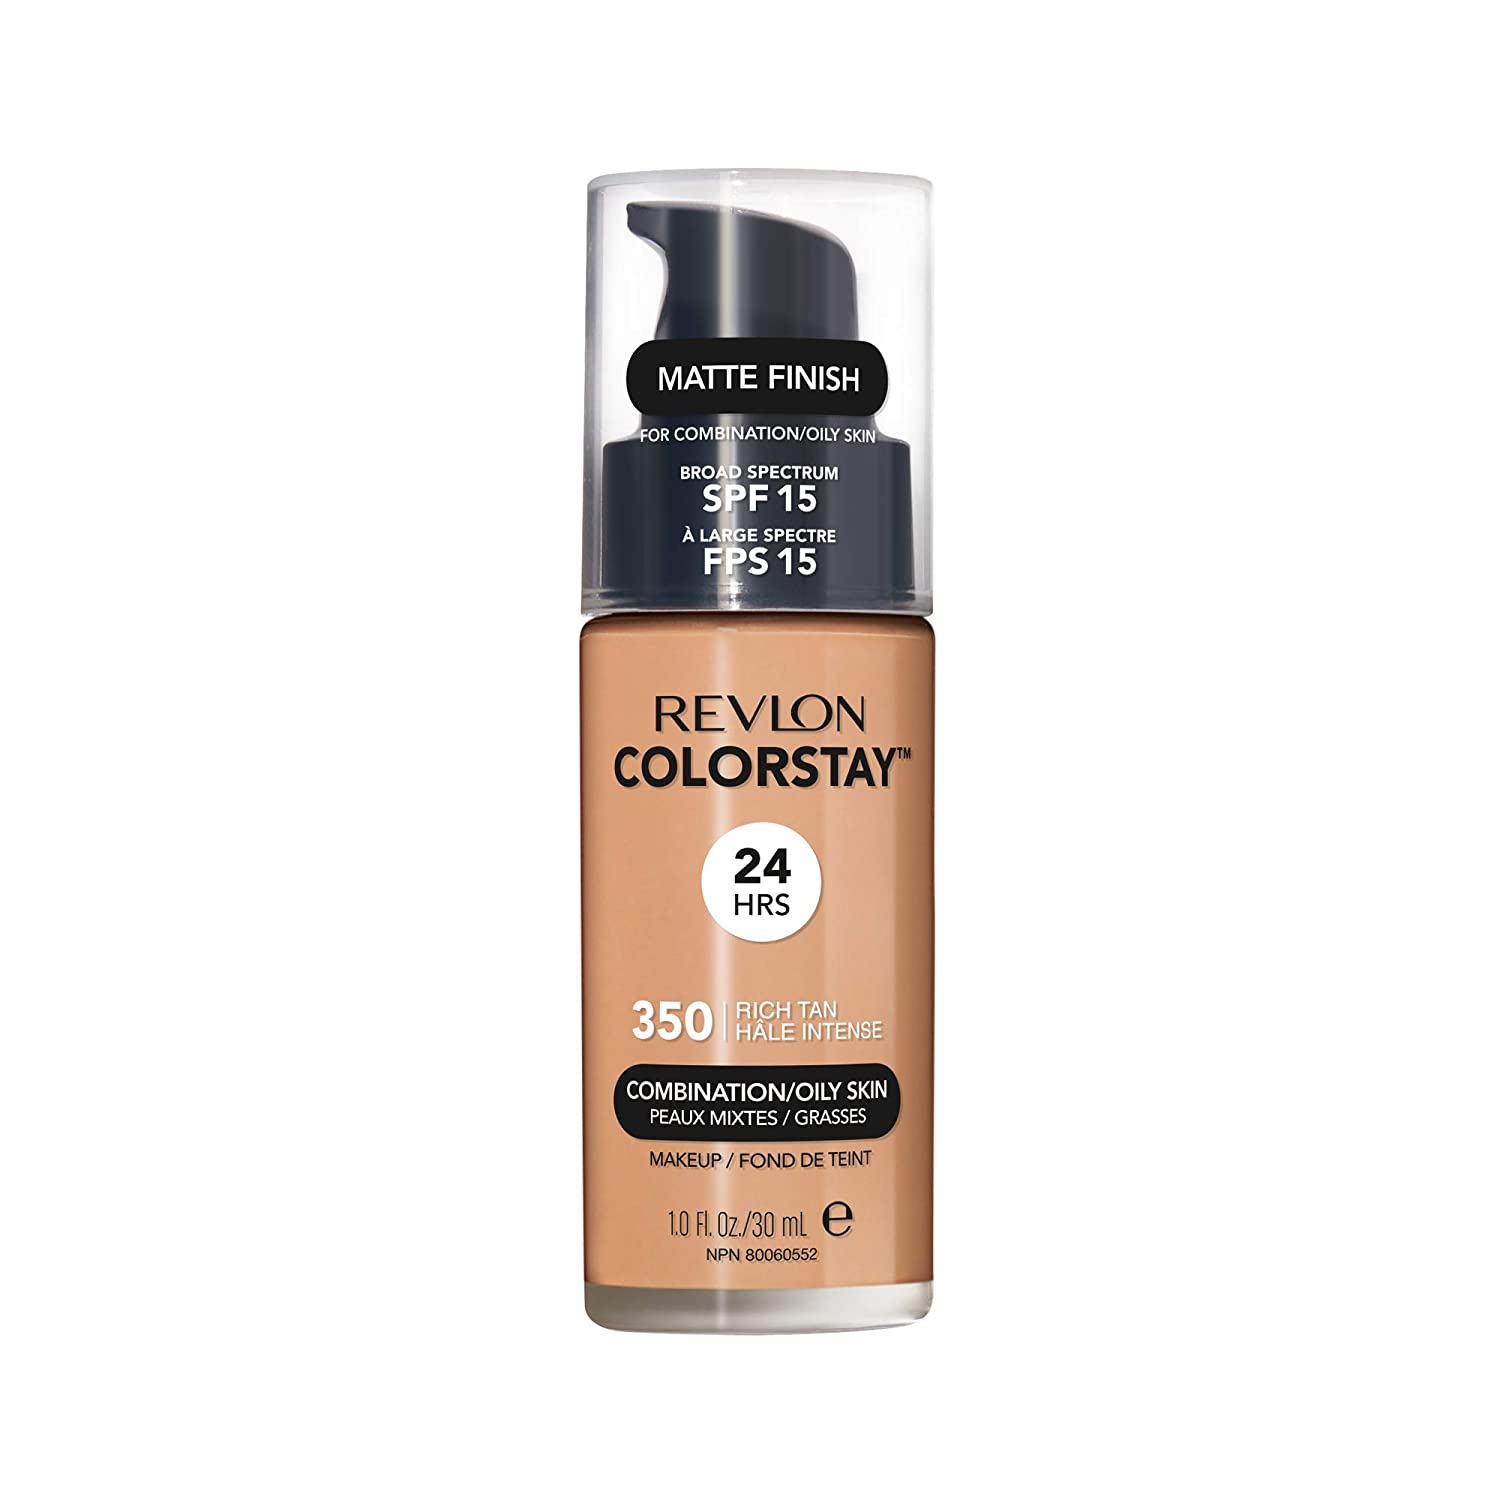 Revlon ColorStay Makeup for Combination/Oily Skin SPF 15, Longwear Liquid Foundation, with Medium-Full Coverage, Matte Finish, Oil Free, 350 Rich Tan, 1.0 oz